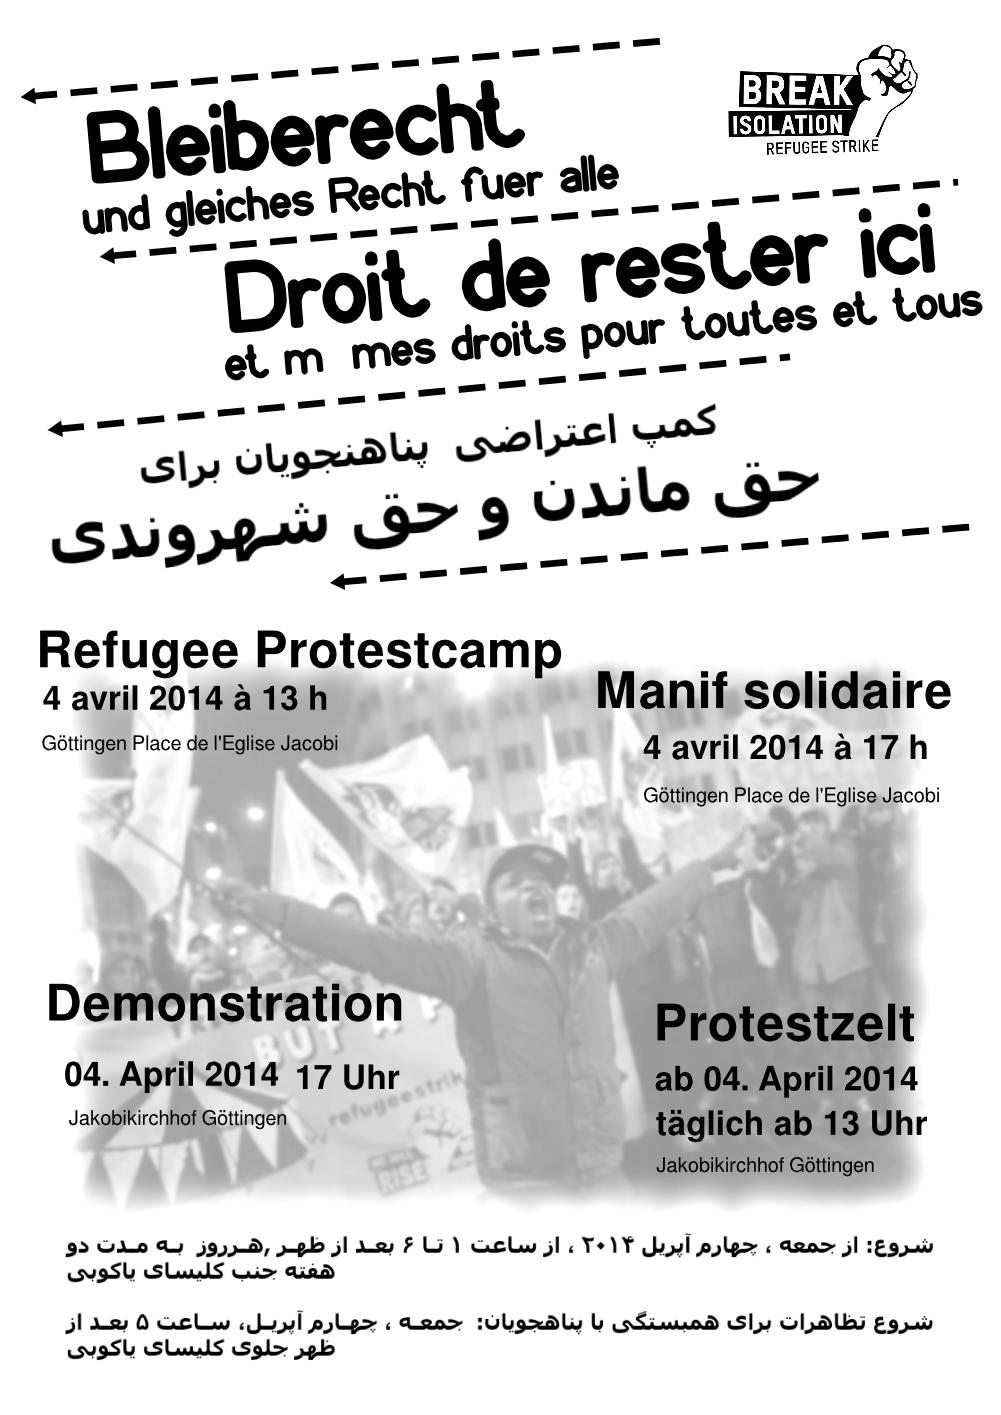 Refugee Protestcamp in Göttingen